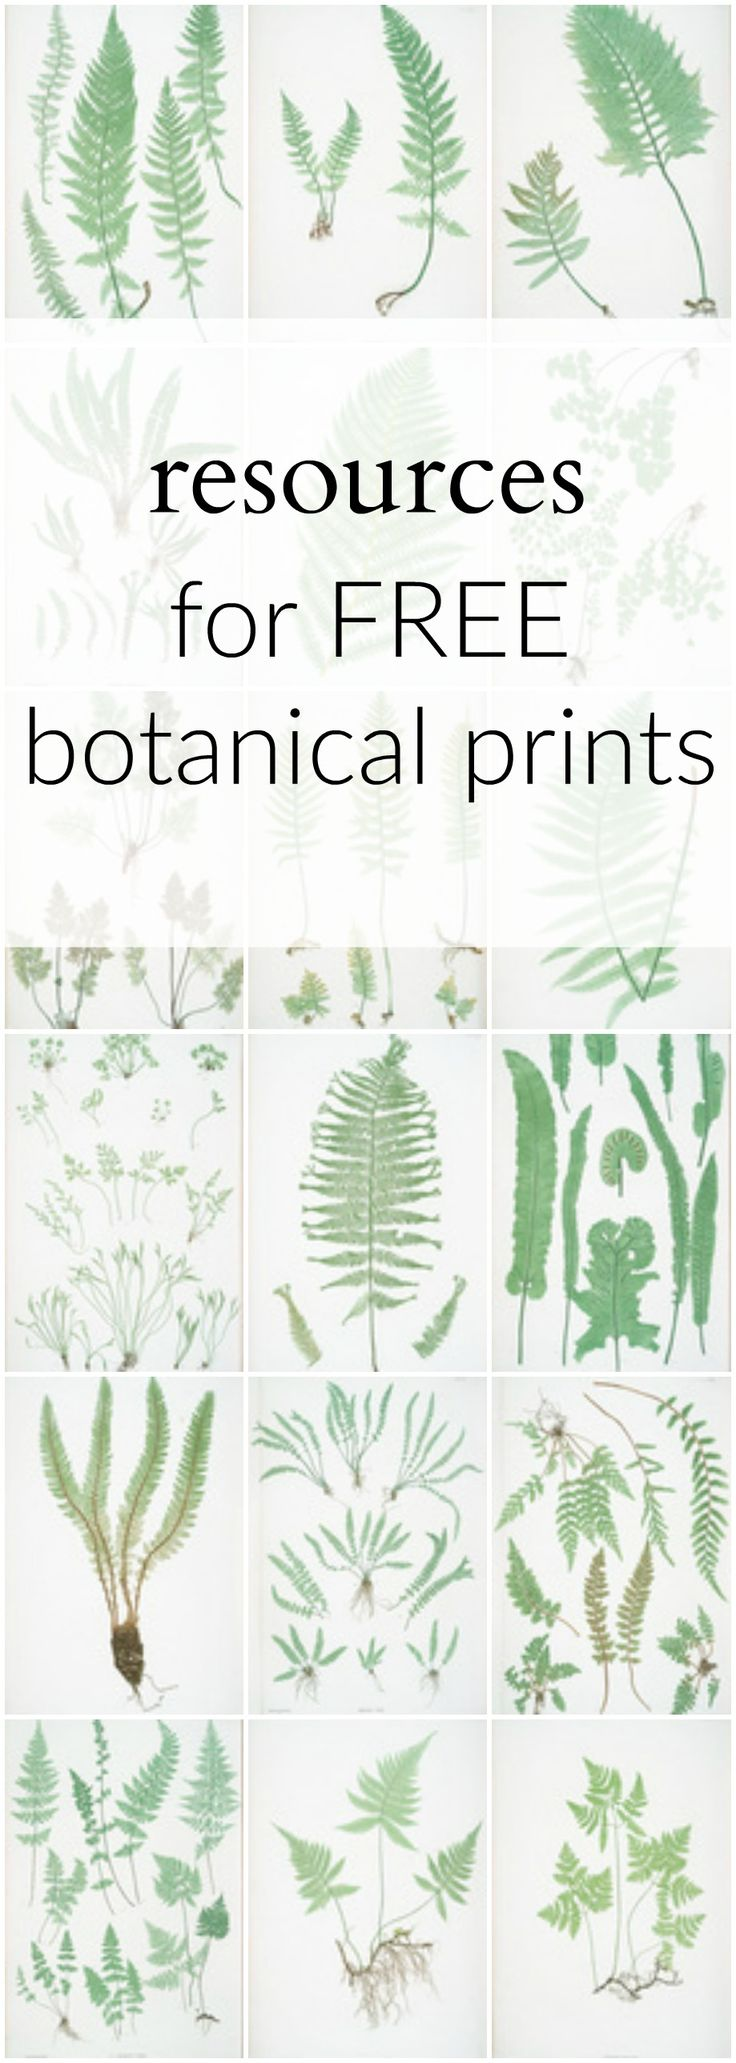 resources for free botanical prints download this e guide with links to over 150